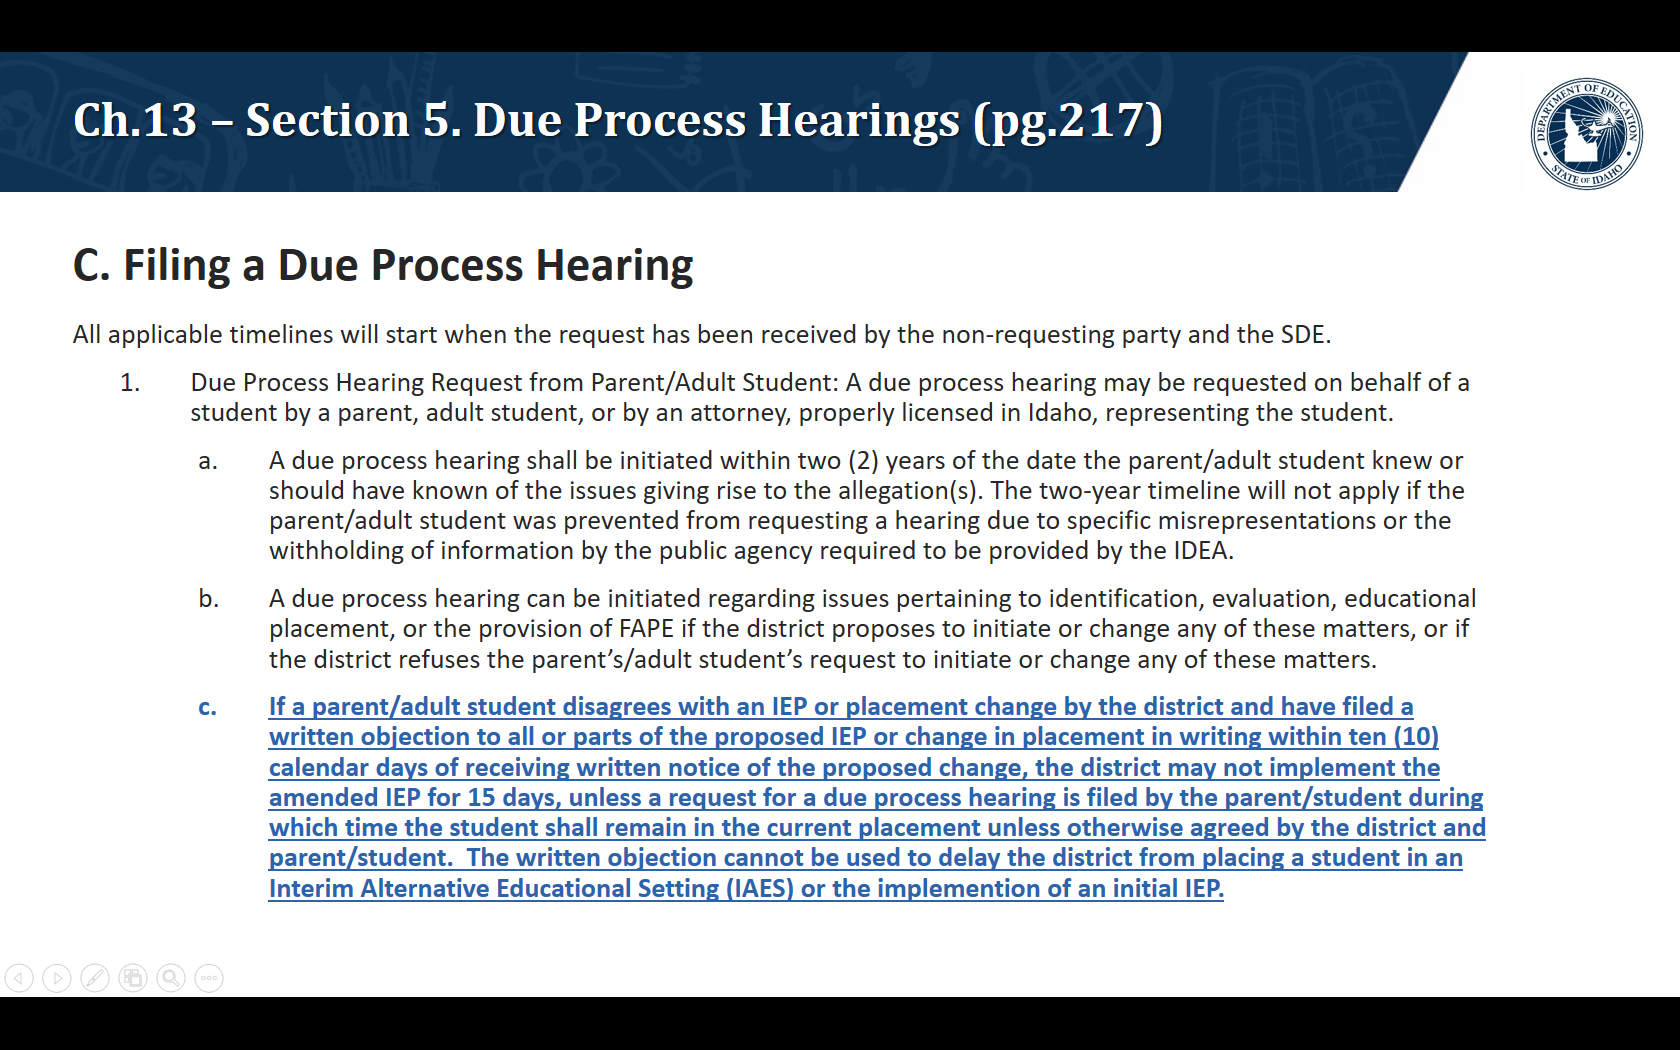 C. Filing a Due Process Hearing. All applicable timelines will start when the request has been received by the non-requesting party and the SDE.  Due Process Hearing Request from Parent/Adult Student: A due process hearing may be requested on behalf of a student by a parent, adult student, or by an attorney, properly licensed in Idaho, representing the student. A due process hearing shall be initiated within two (2) years of the date the parent/adult student knew or should have known of the issues giving rise to the allegation(s). The two-year timeline will not apply if the parent/adult student was prevented from requesting a hearing due to specific misrepresentations or the withholding of information by the public agency required to be provided by the IDEA. A due process hearing can be initiated regarding issues pertaining to identification, evaluation, educational placement, or the provision of FAPE if the district proposes to initiate or change any of these matters, or if the district refuses the parent's/adult student's request to initiate or change any of these matters. If a parent/adult student disagrees with an IEP or placement change by the district and have filed a written objection to all or parts of the proposed IEP or change in placement in writing within ten (10) calendar days of receiving written notice of the proposed change, the district may not implement the amended IEP for 15 days, unless a request for a due process hearing is filed by the parent/student during which time the student shall remain in the current placement unless otherwise agreed by the district and parent/student.  The written objection cannot be used to delay the district from placing a student in an Interim Alternative Educational Setting (IAES) or the implemention of an initial IEP.